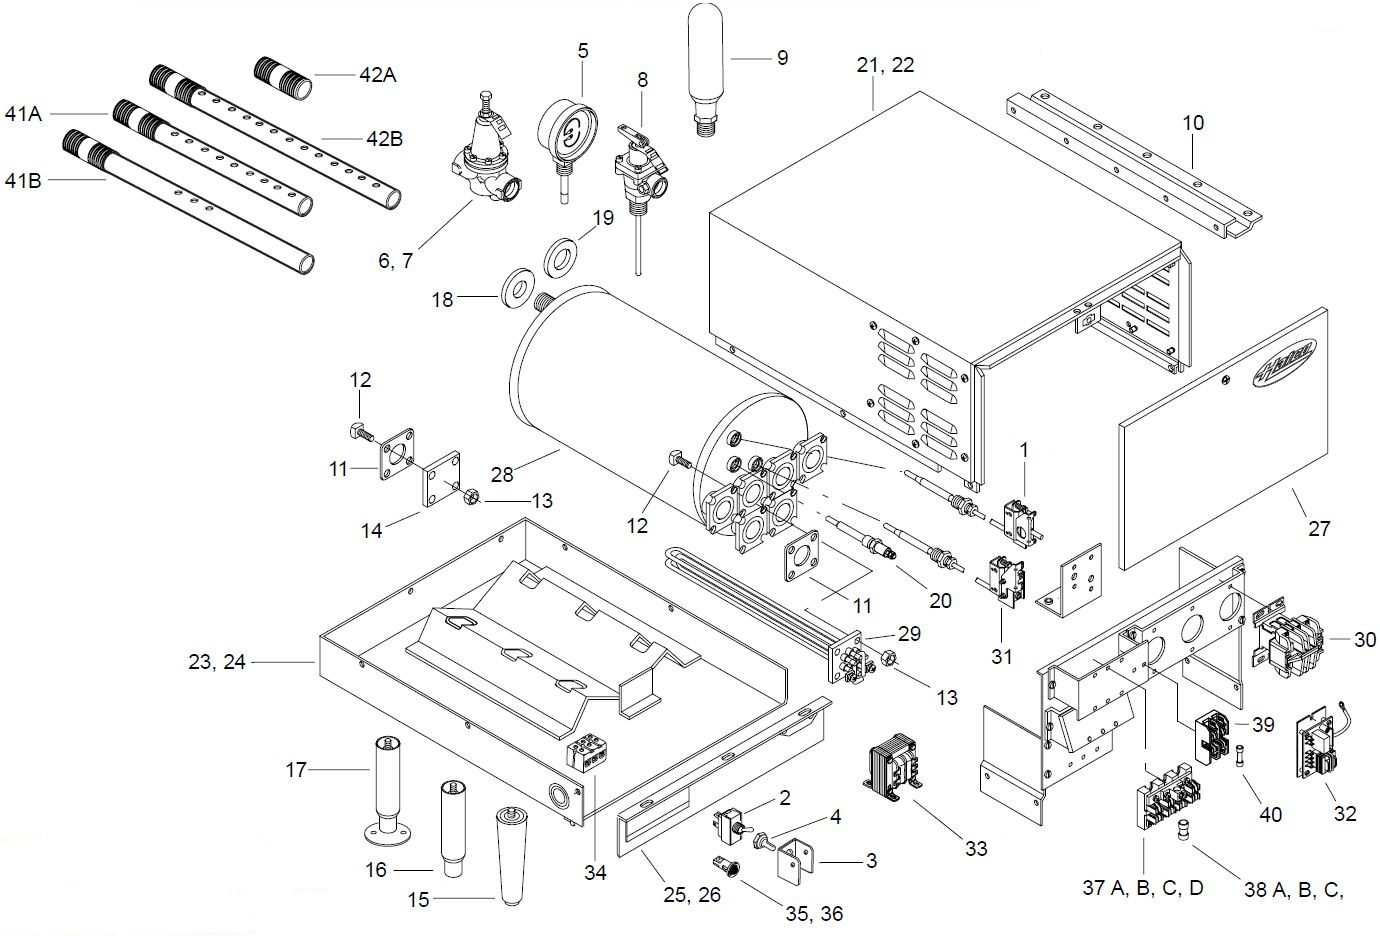 Cj2a parts manual on